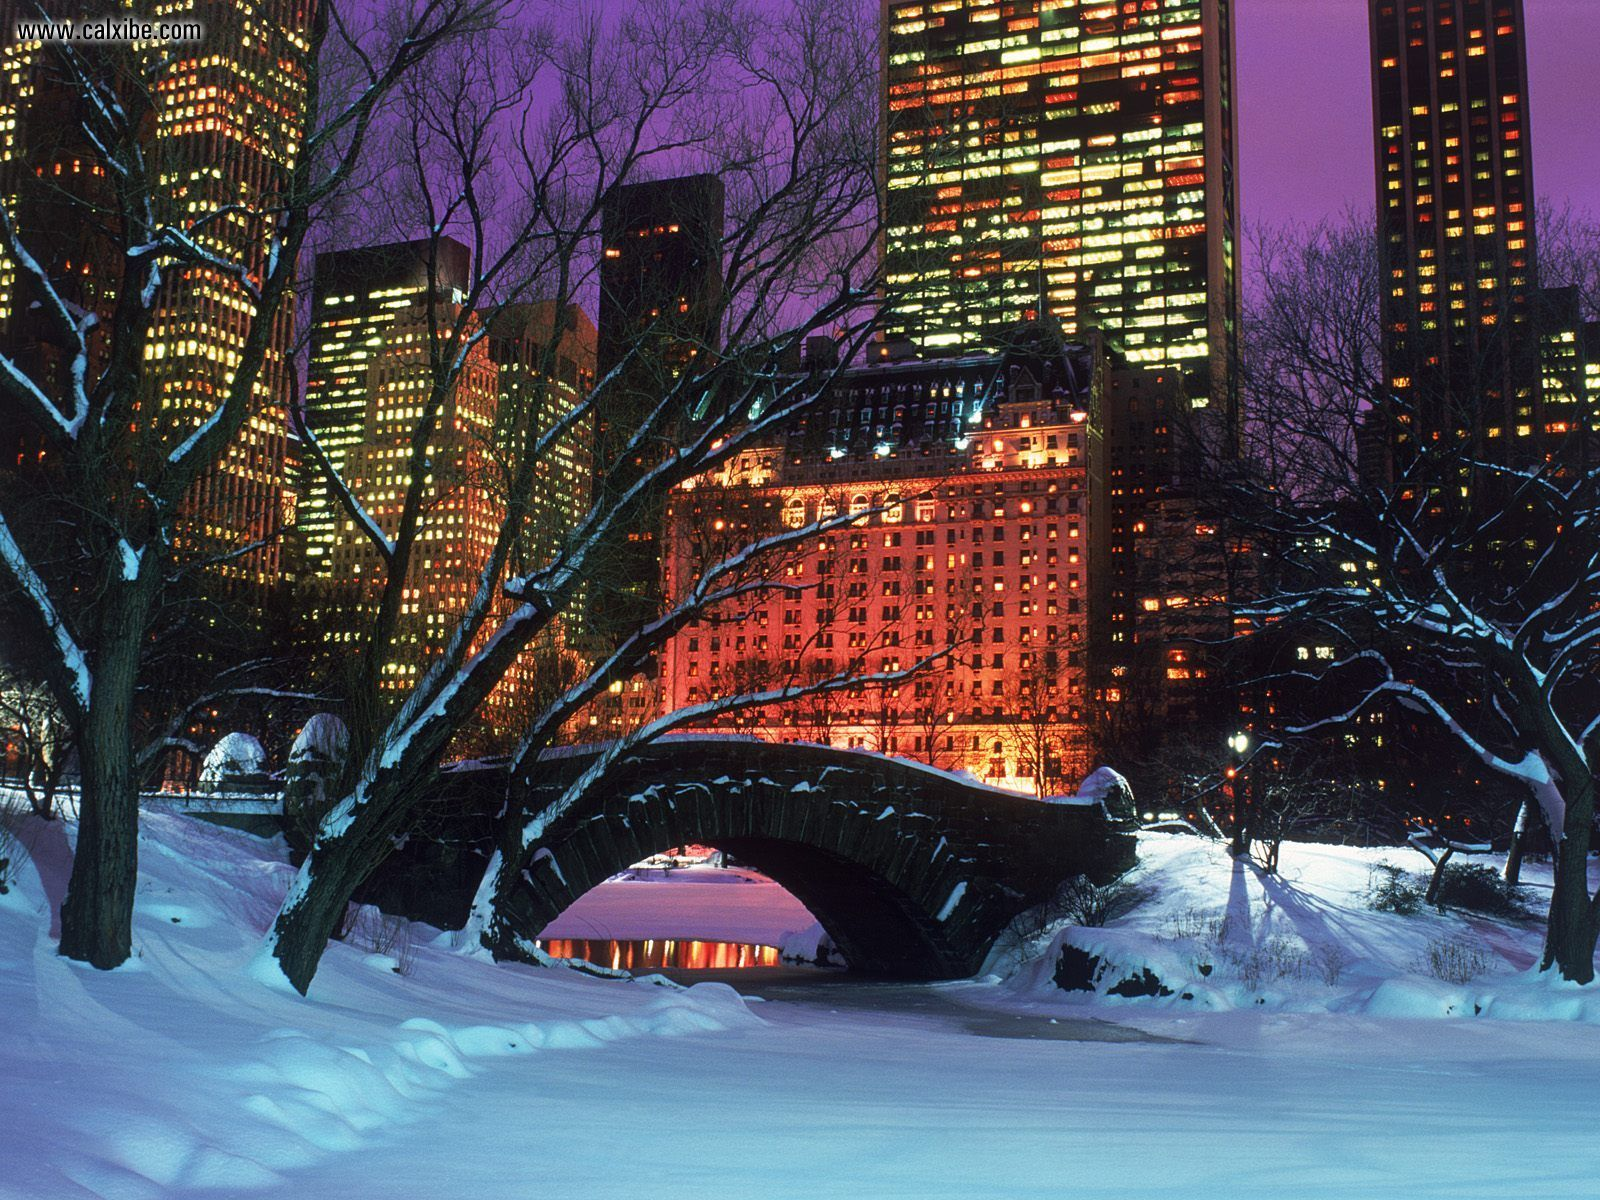 Buildings City Central Park in Winter New York City desktop 1600x1200